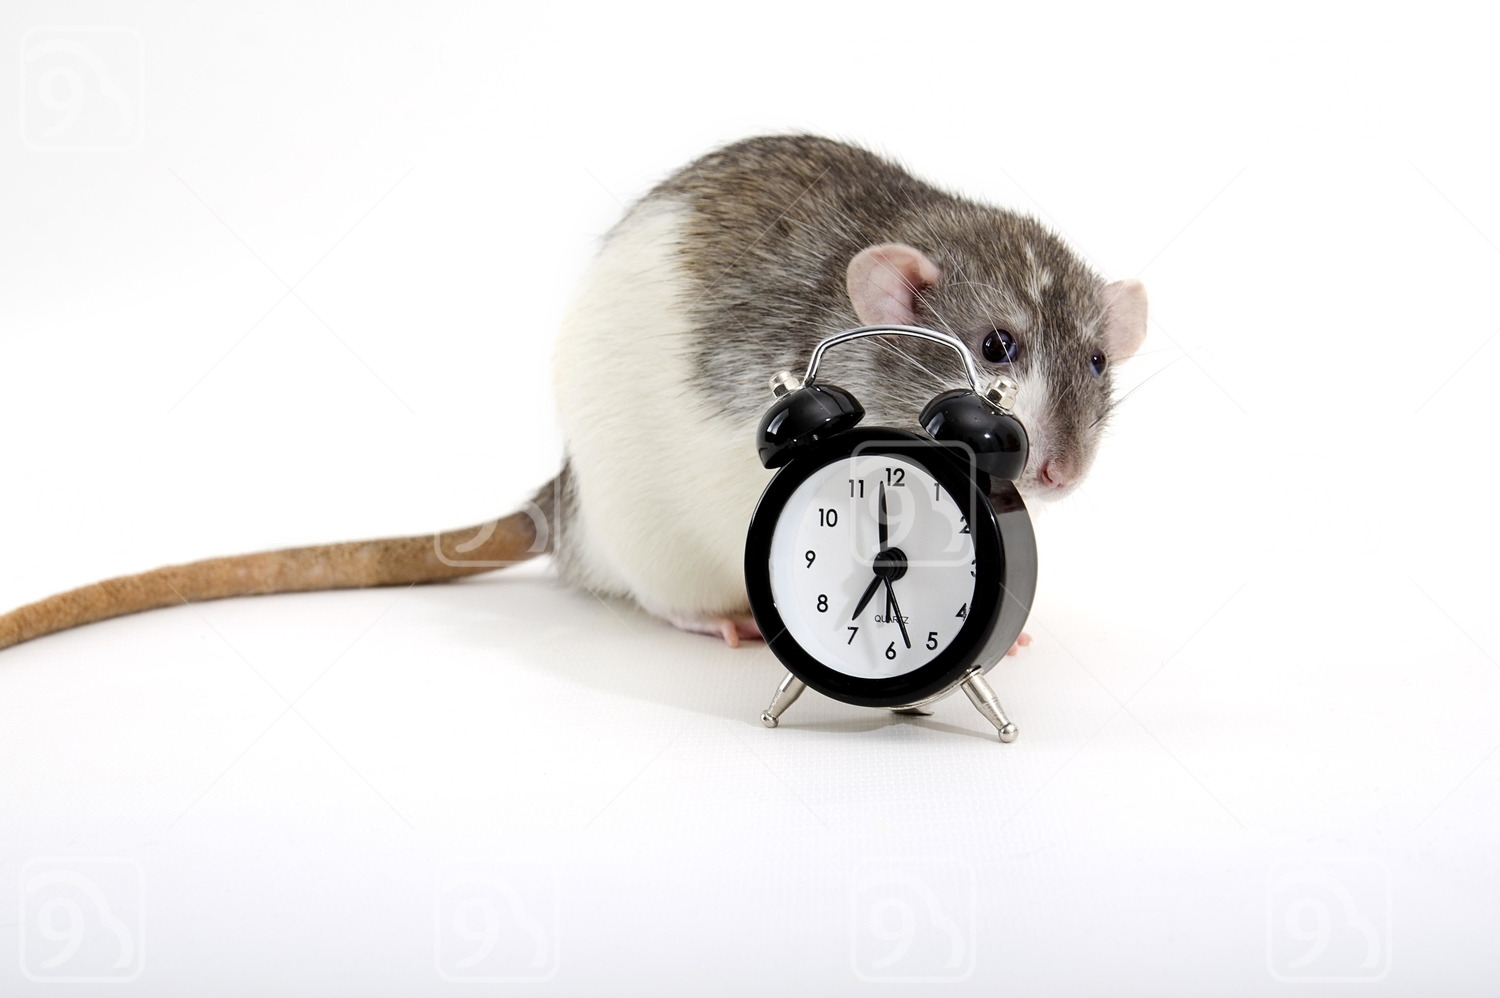 Rat hiding behind alarm clock.